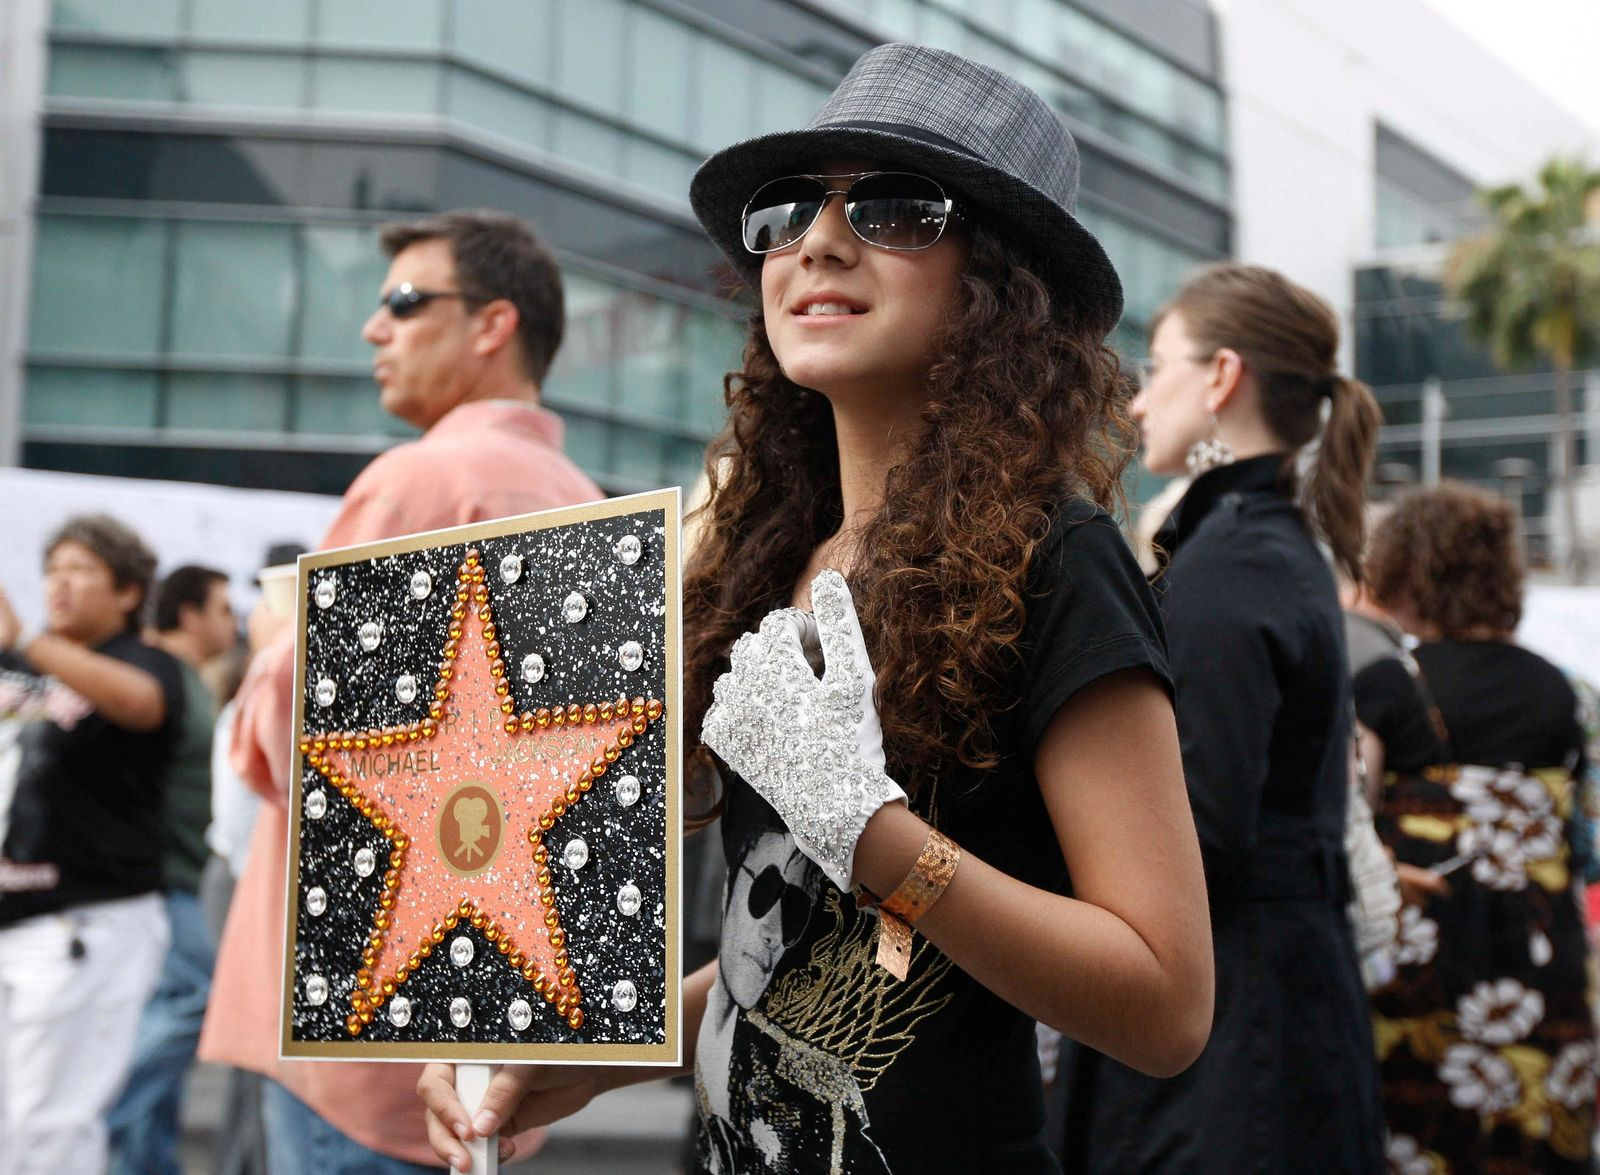 FILE - This July 7, 2009 file photo shows Serena Romaya, of San Diego, Calif., arrives at the memorial service for Michael Jackson  in Los Angeles. Tuesday, June 25, 2019, marks the tenth anniversary of Jackson's death. (AP Photo/Matt Sayles, File)